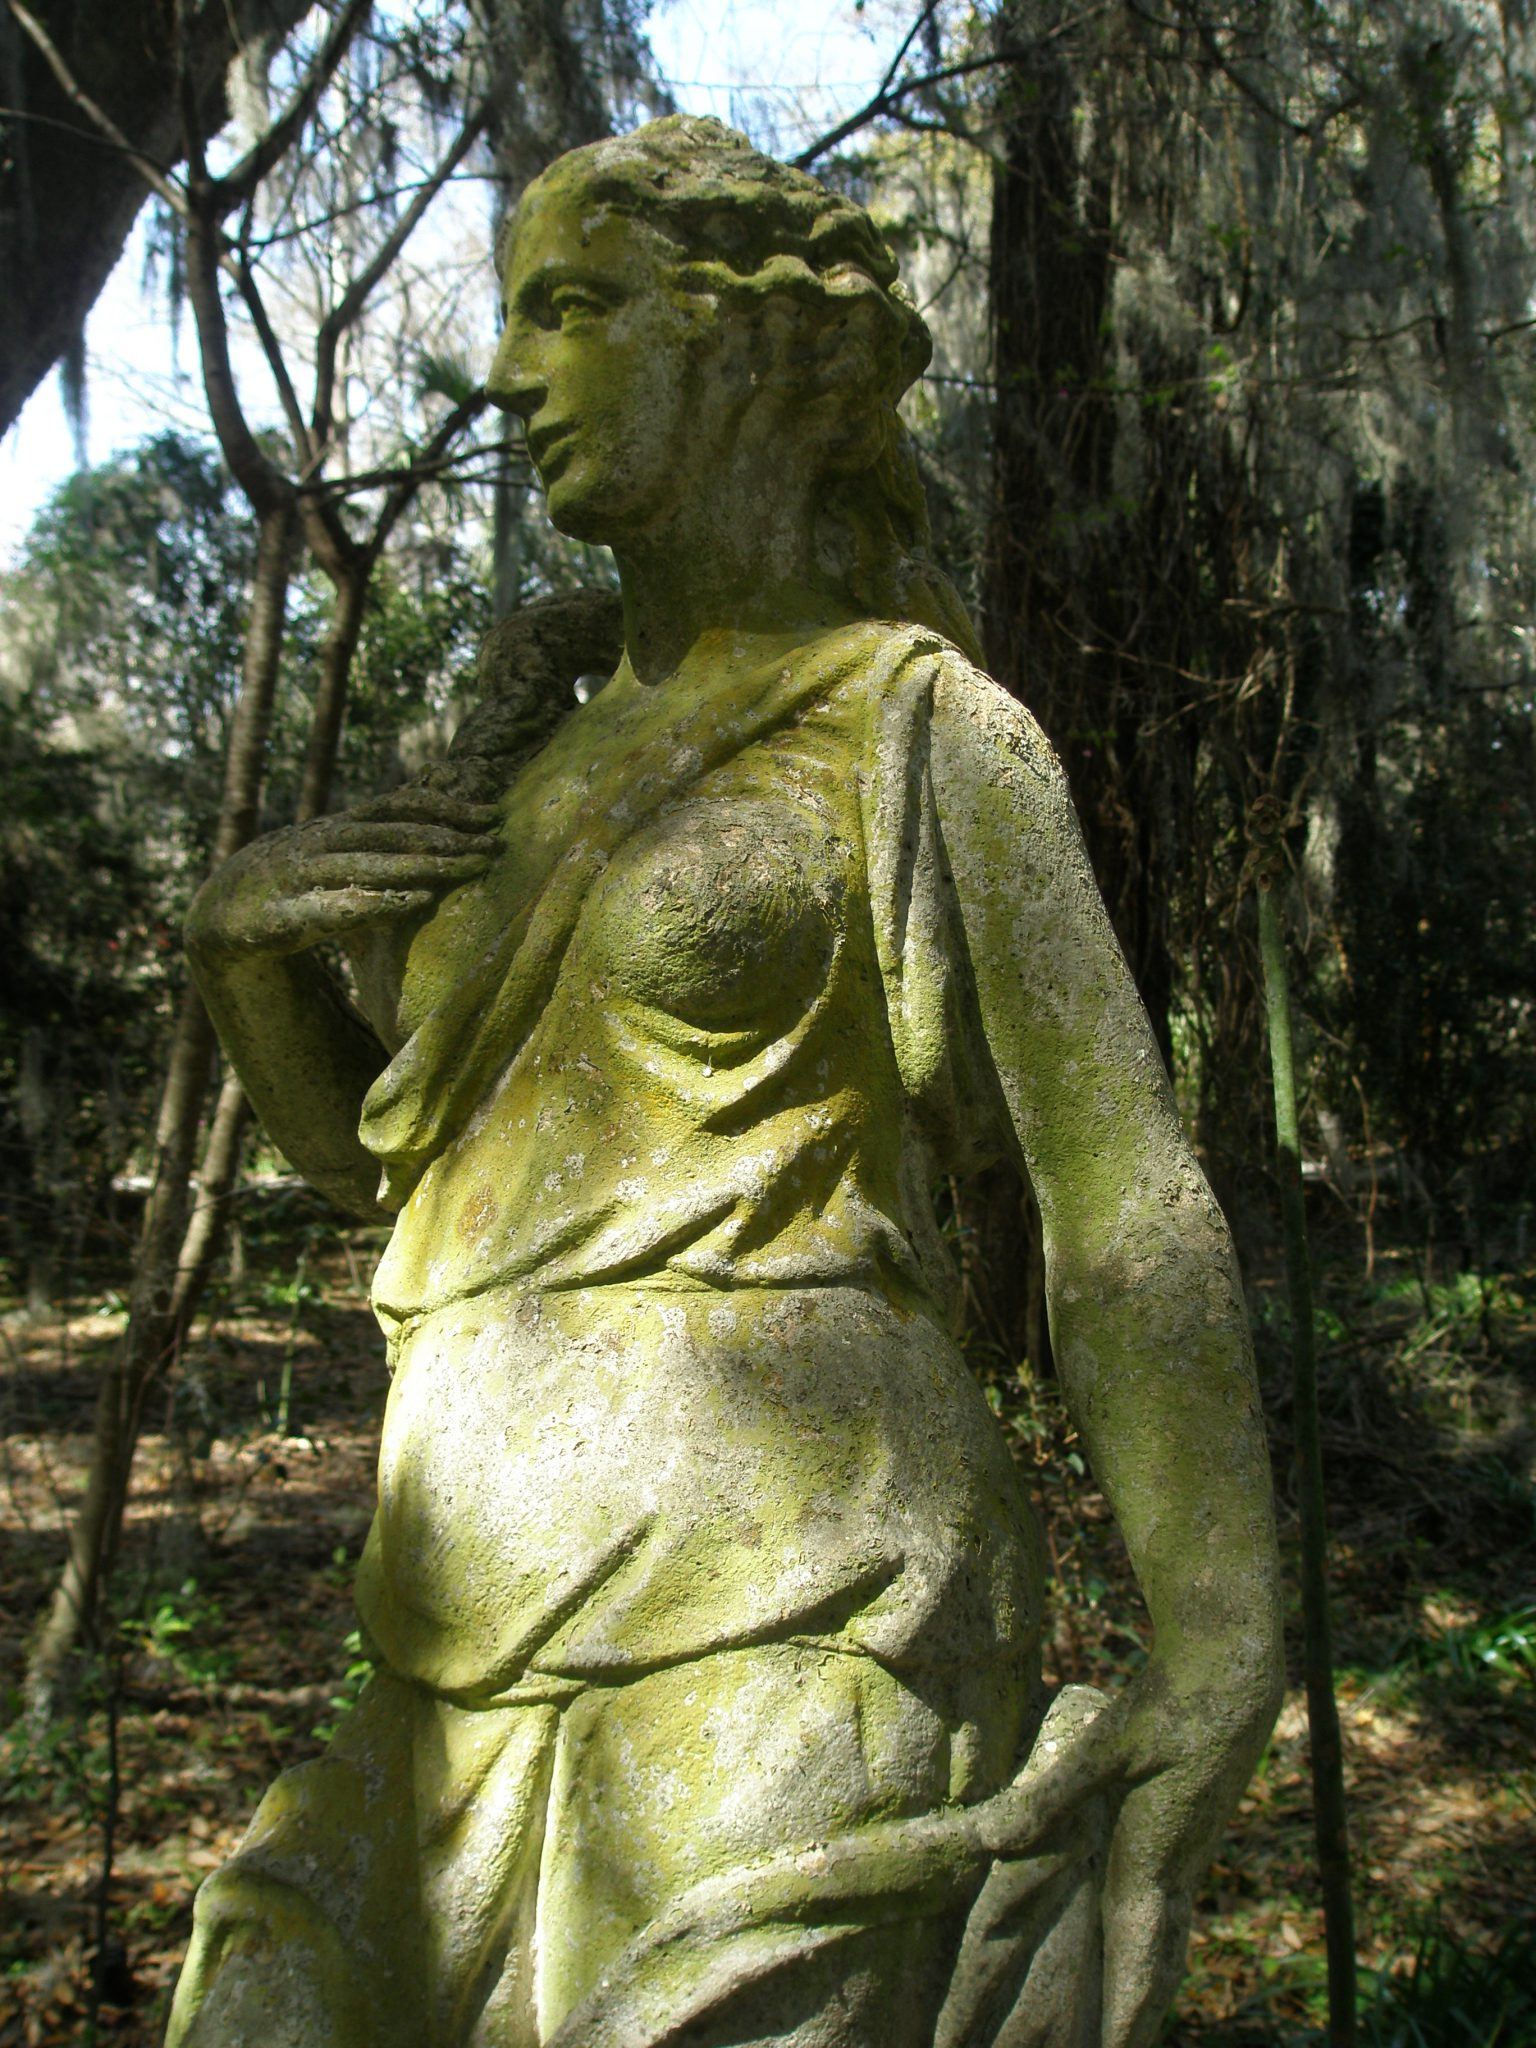 A Mossy Goddess, near the Crypt